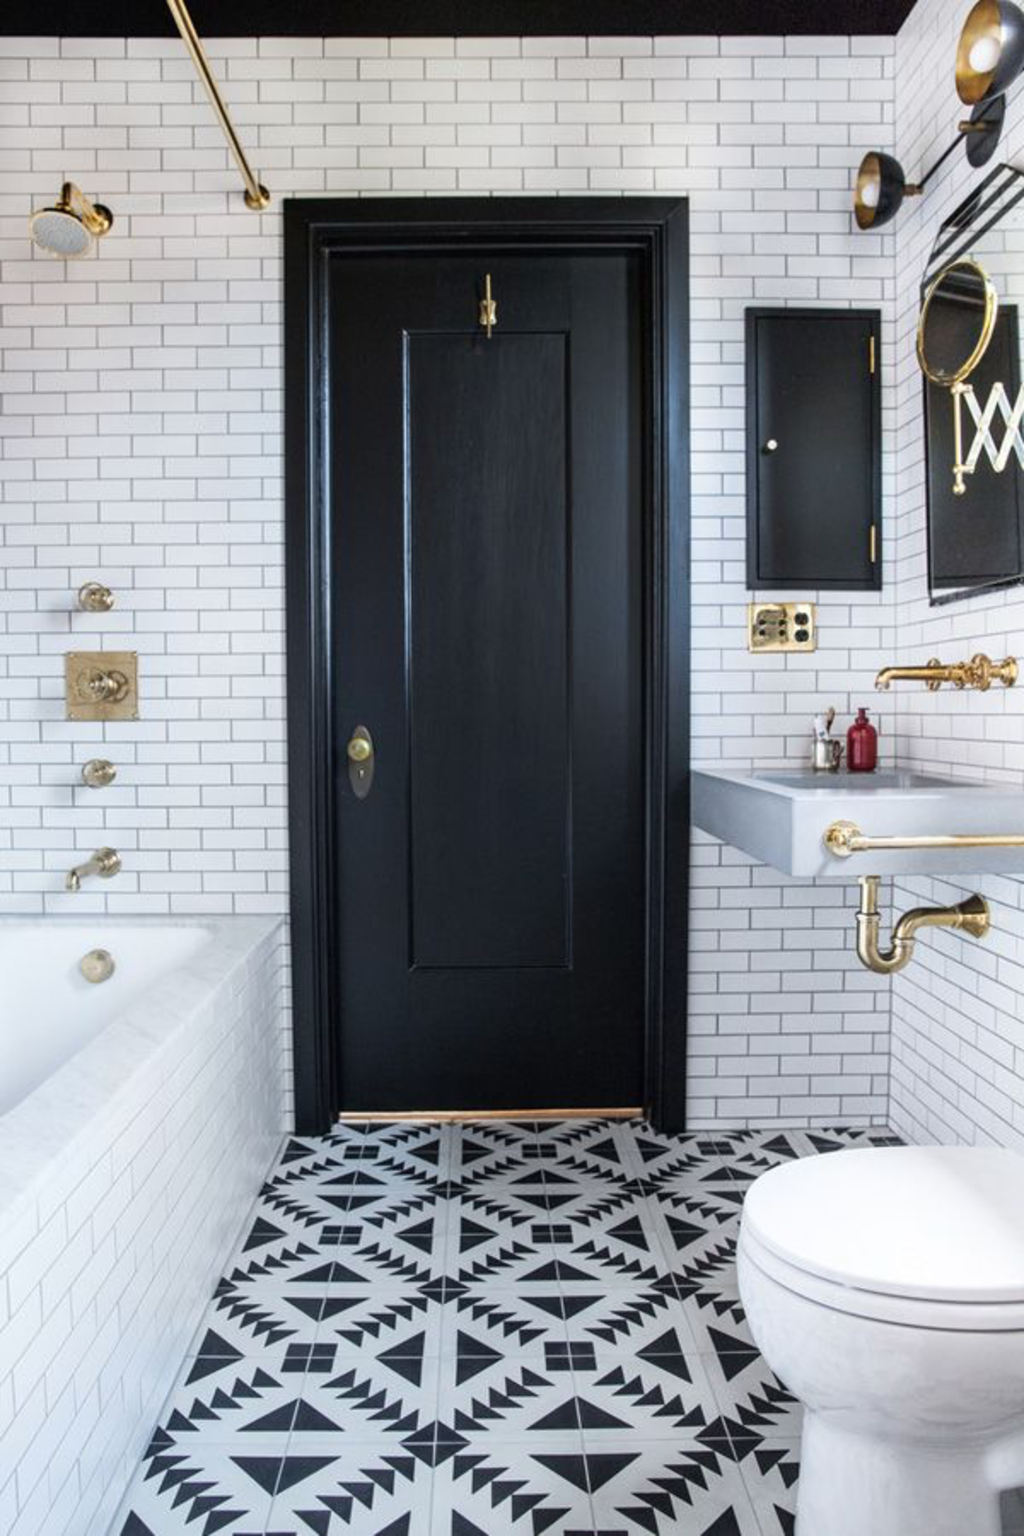 Black and White and Gold in the Bathroom